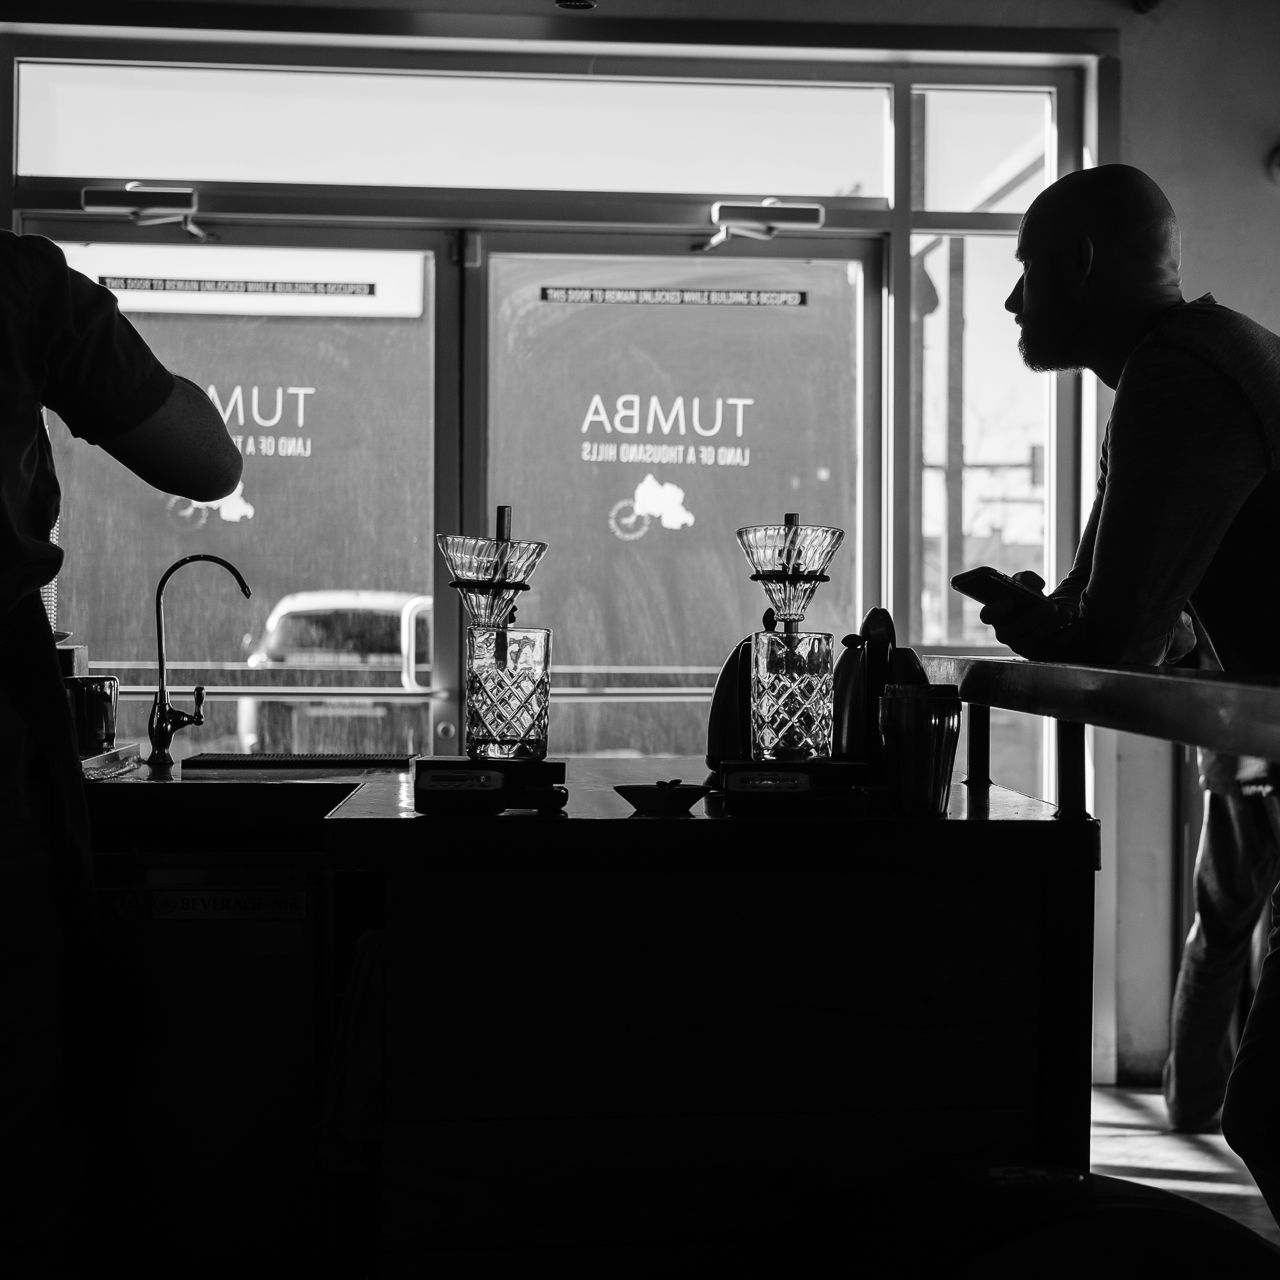 Day 71 - 365 Day B&W Photo Challenge - Waiting for Coffee at Corvus Coffee Roasters on South Broadway in Denver, Colorado - Fuji XT-3, XF 35mm f/2, Acros Y Film Simulation